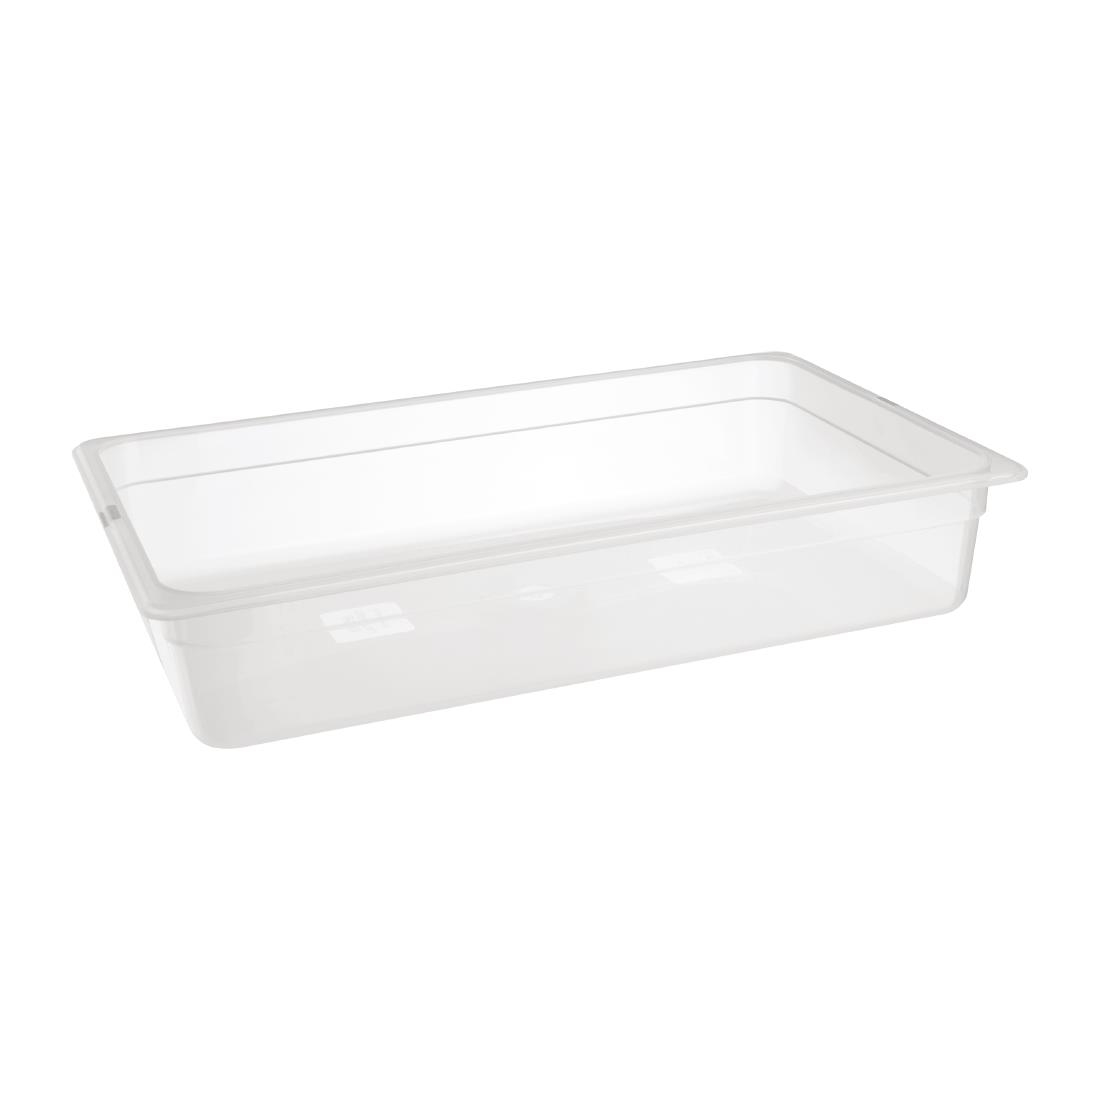 Image of Nisbets Essentials Polypropylene 1/1 Gastronorm 100mm